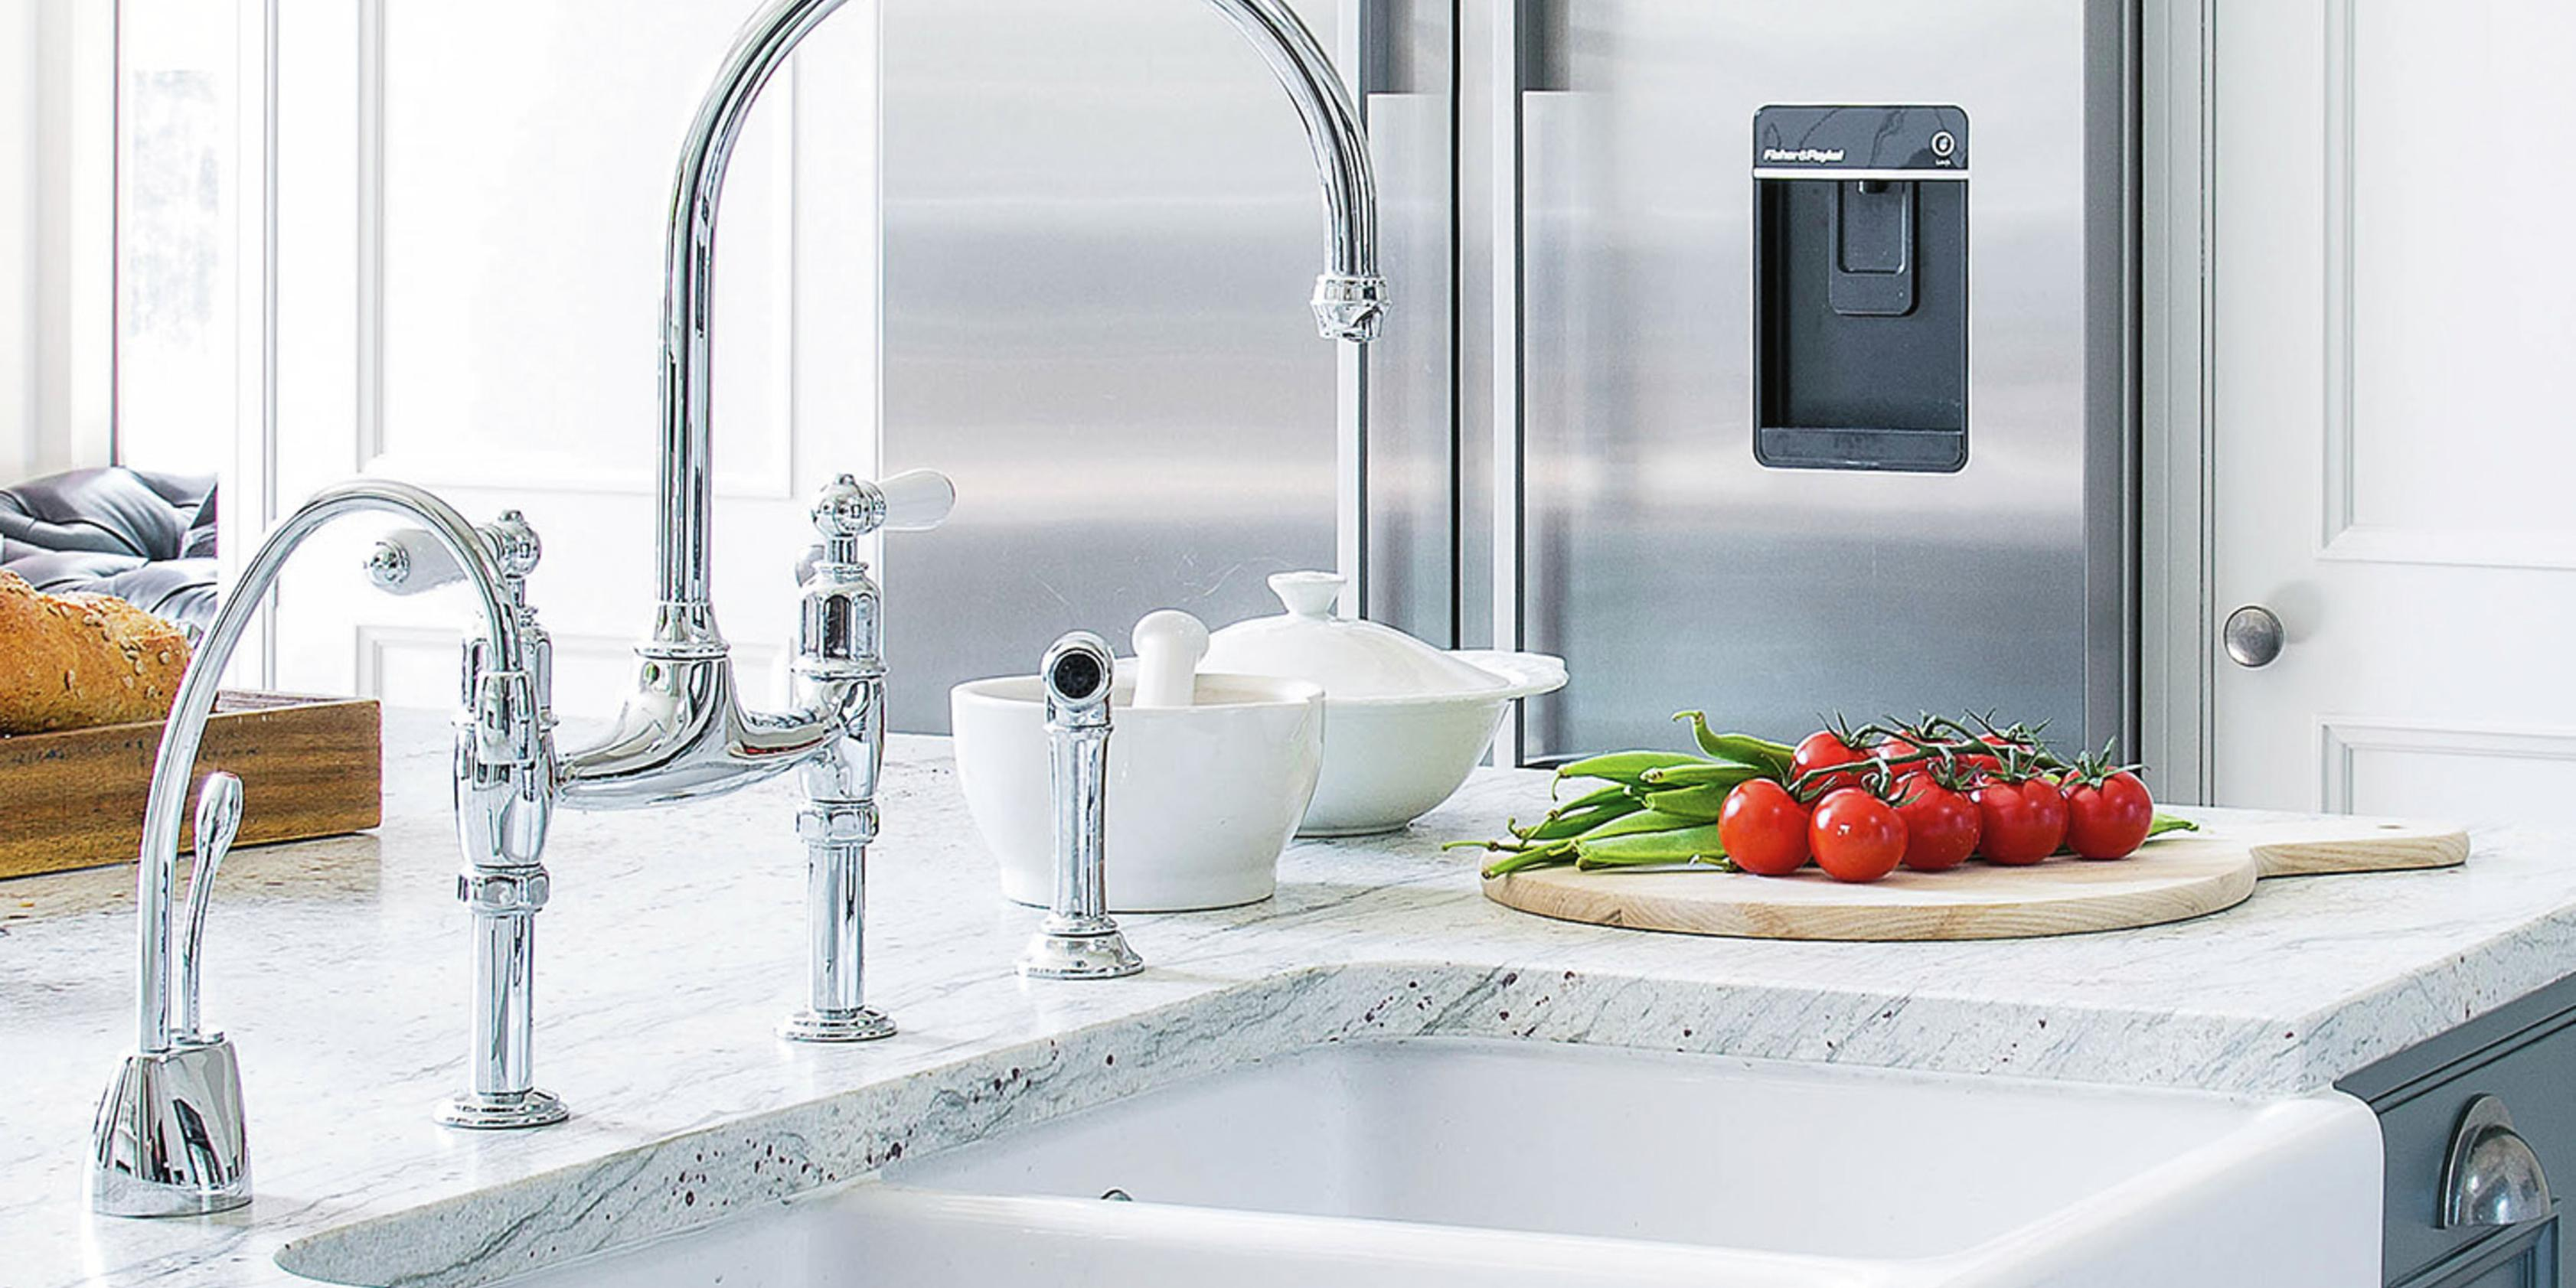 Double under-mounted sink with marble benchtops and stainless steel taps